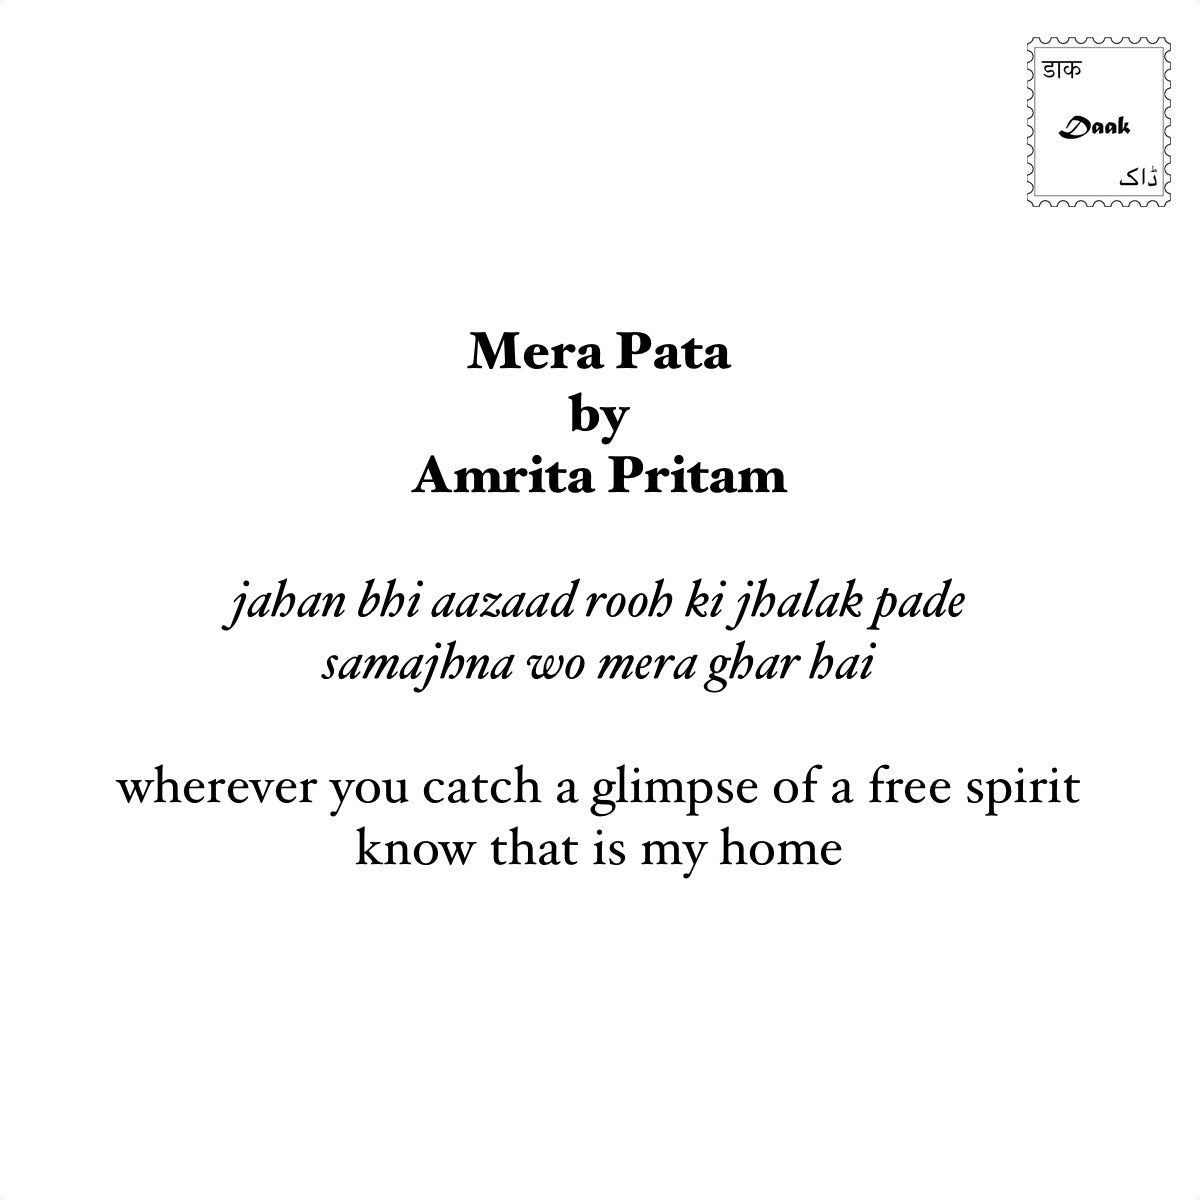 'Mera Pata' - Framed Quote by Amrita Pritam